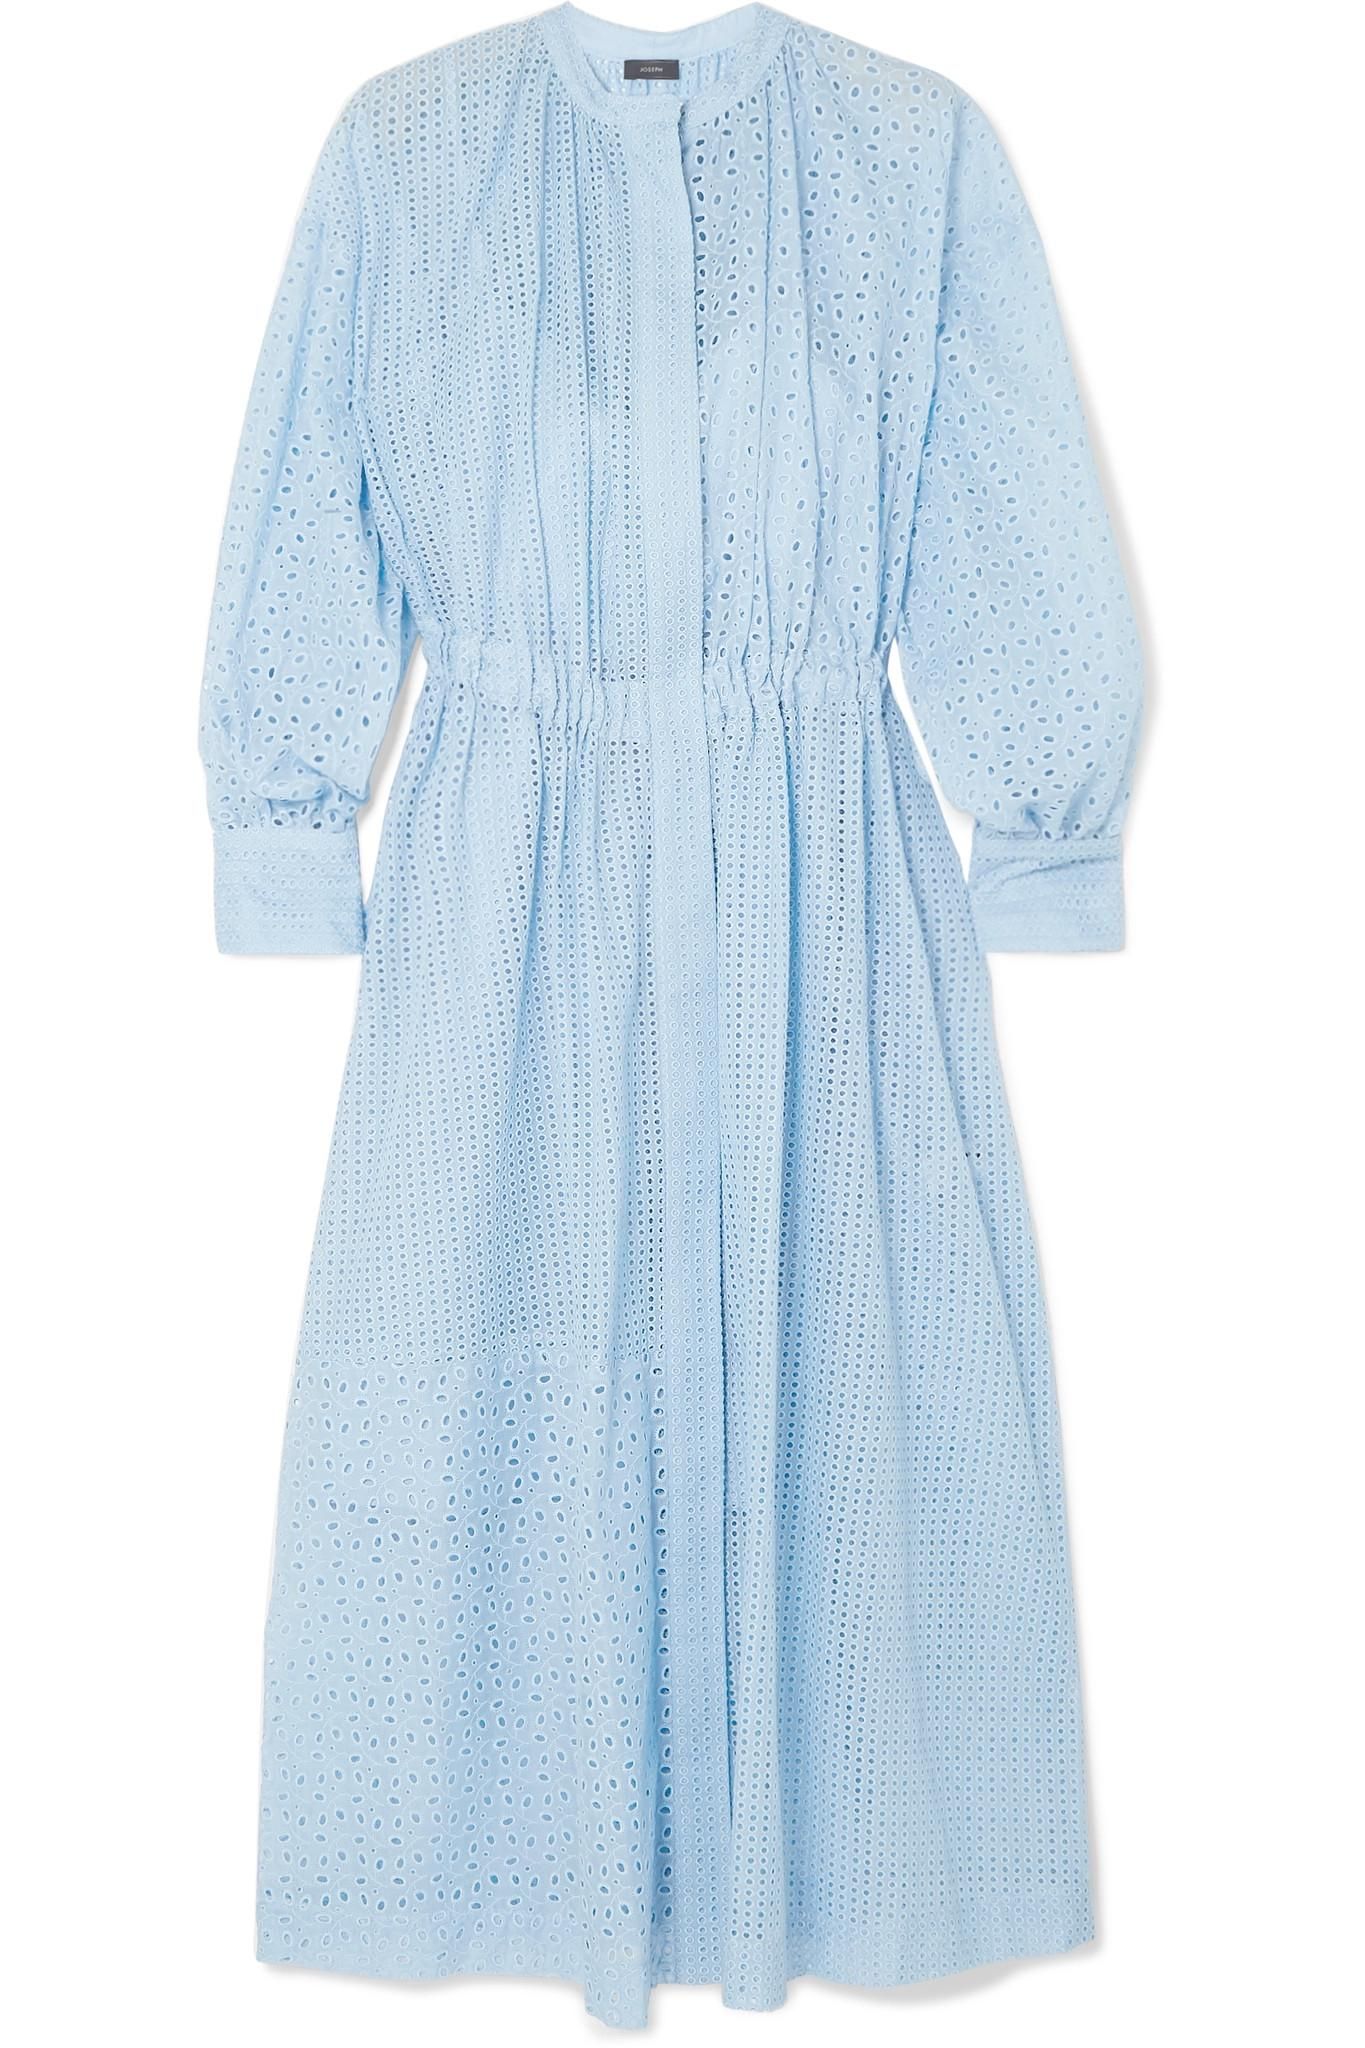 11c6c0269242 Lyst - JOSEPH Rafael Broderie Anglaise Cotton-blend Midi Dress in Blue